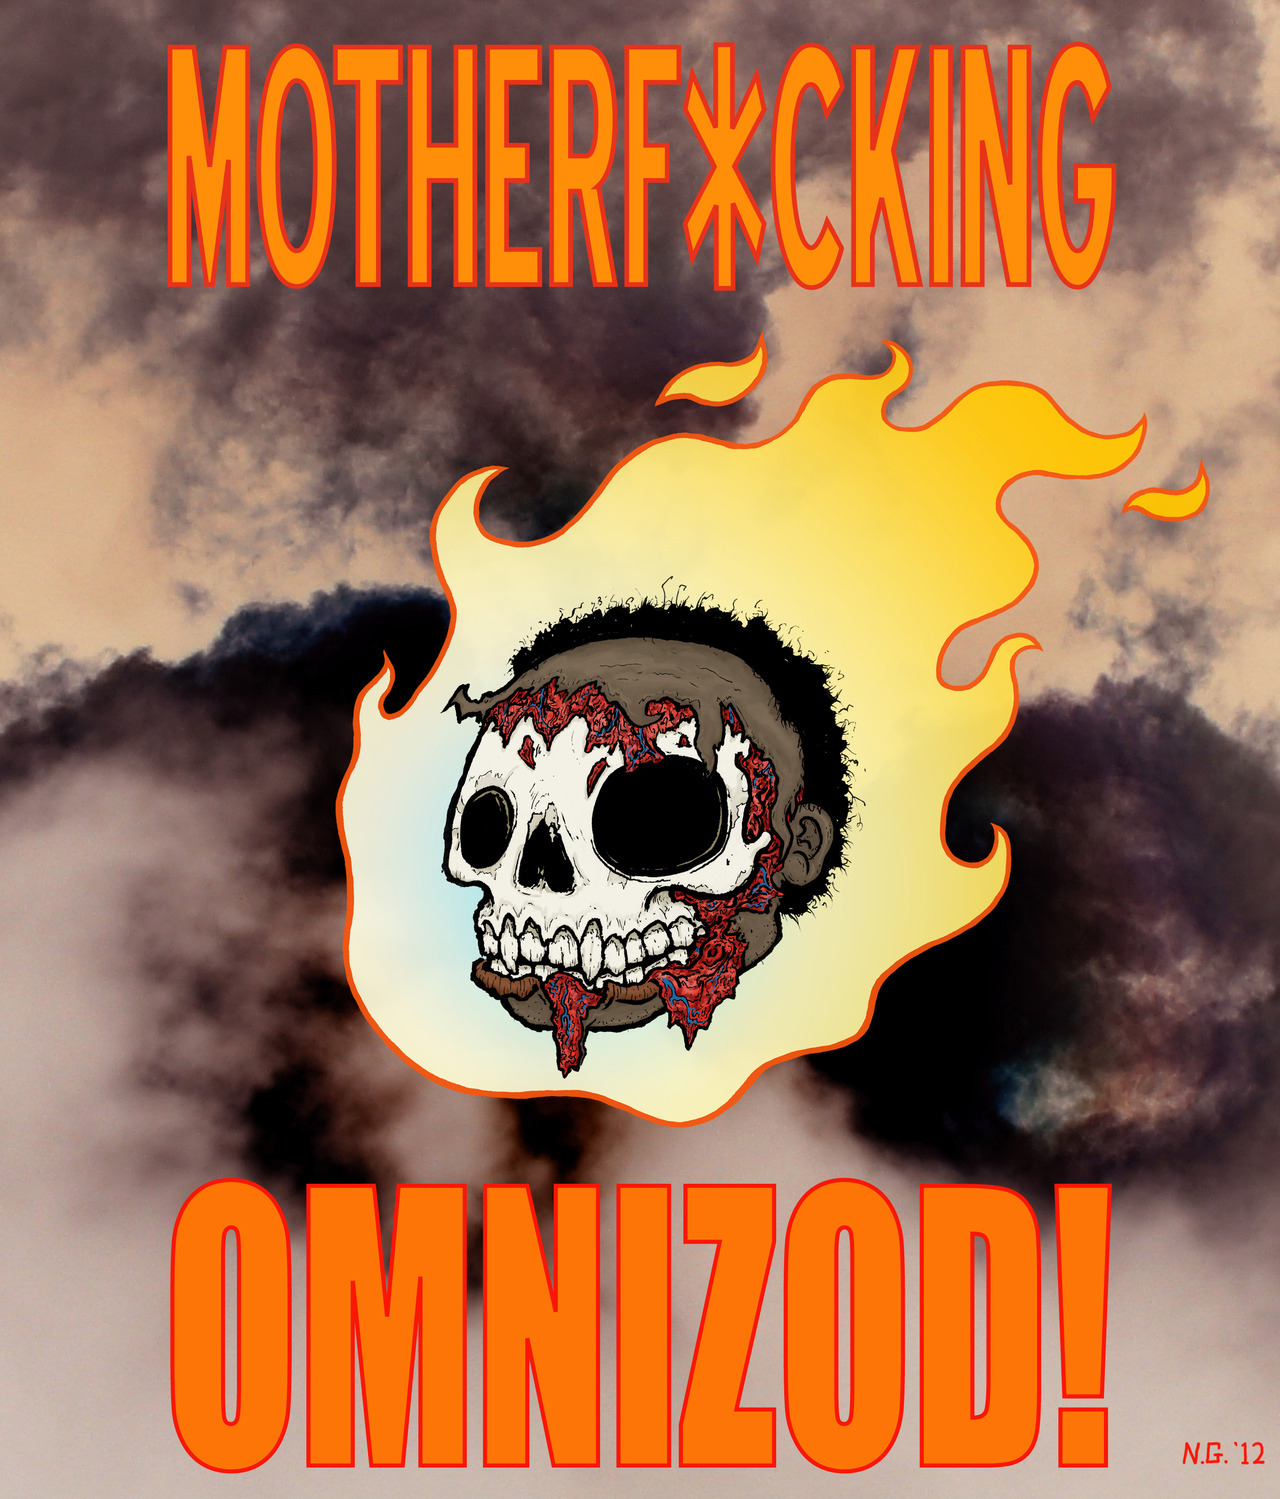 It's Omnizod Motherf*ckers! Submitted by Nathan Goold.